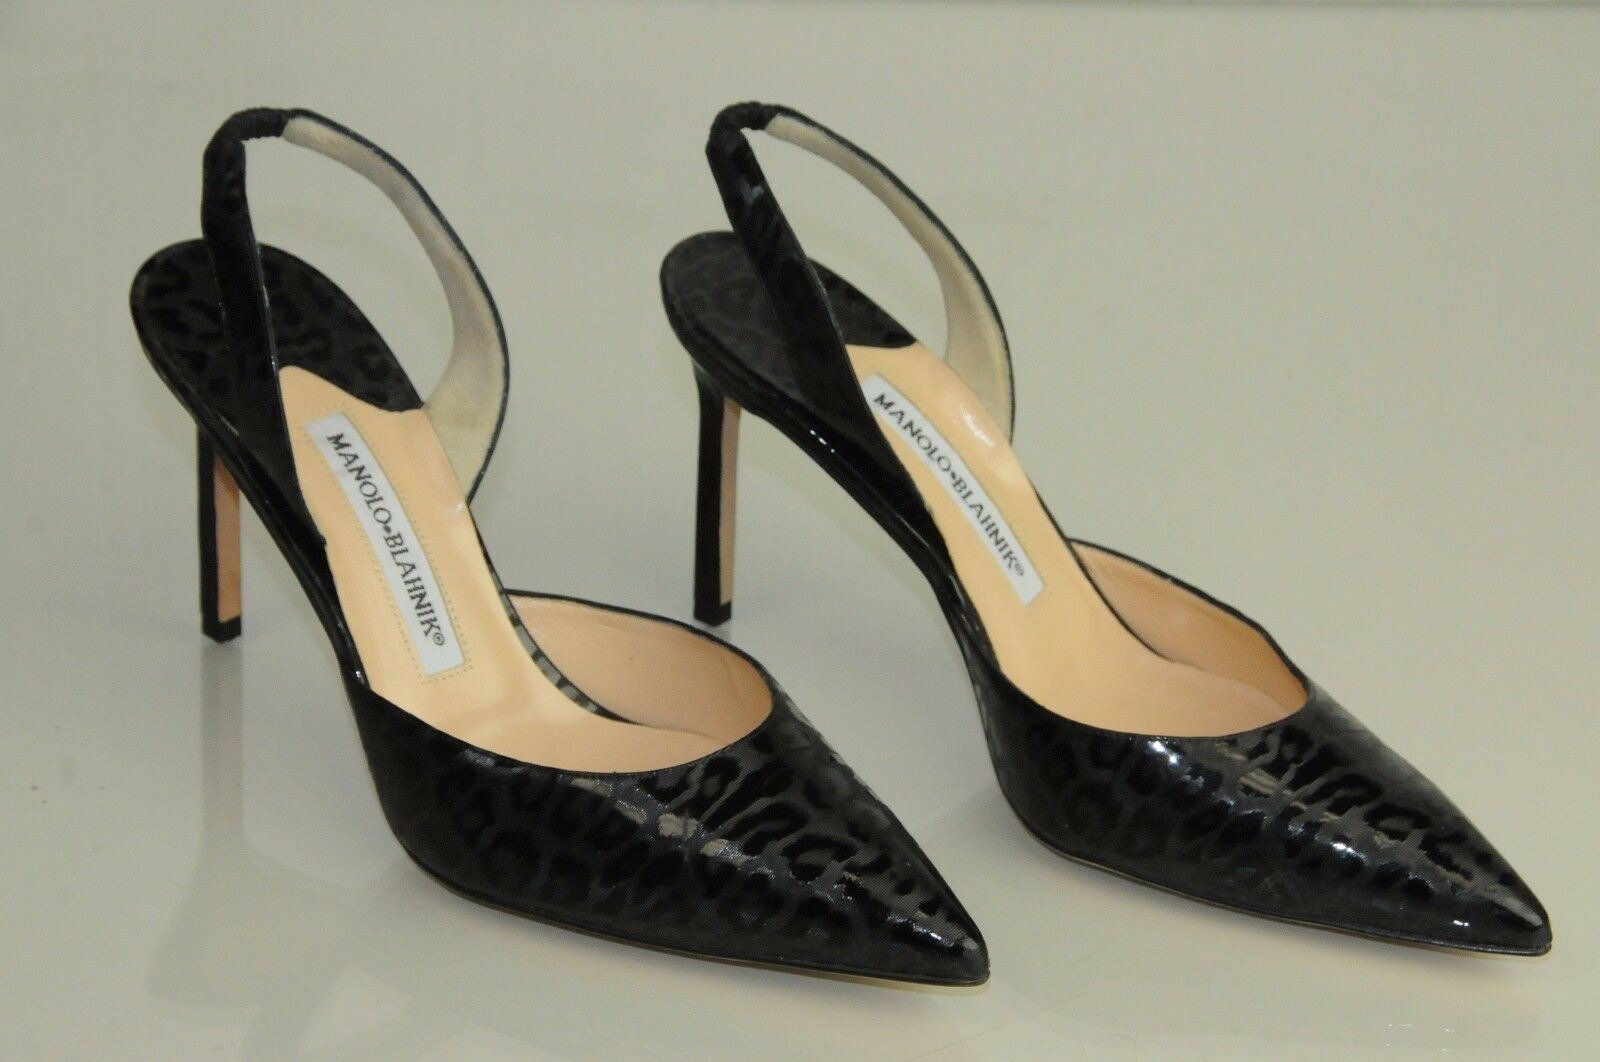 865 NEW MANOLO MANOLO MANOLO BLAHNIK Carolyne Black Textured LEOPARD Patent bb Heels SHOES 37 a621f7